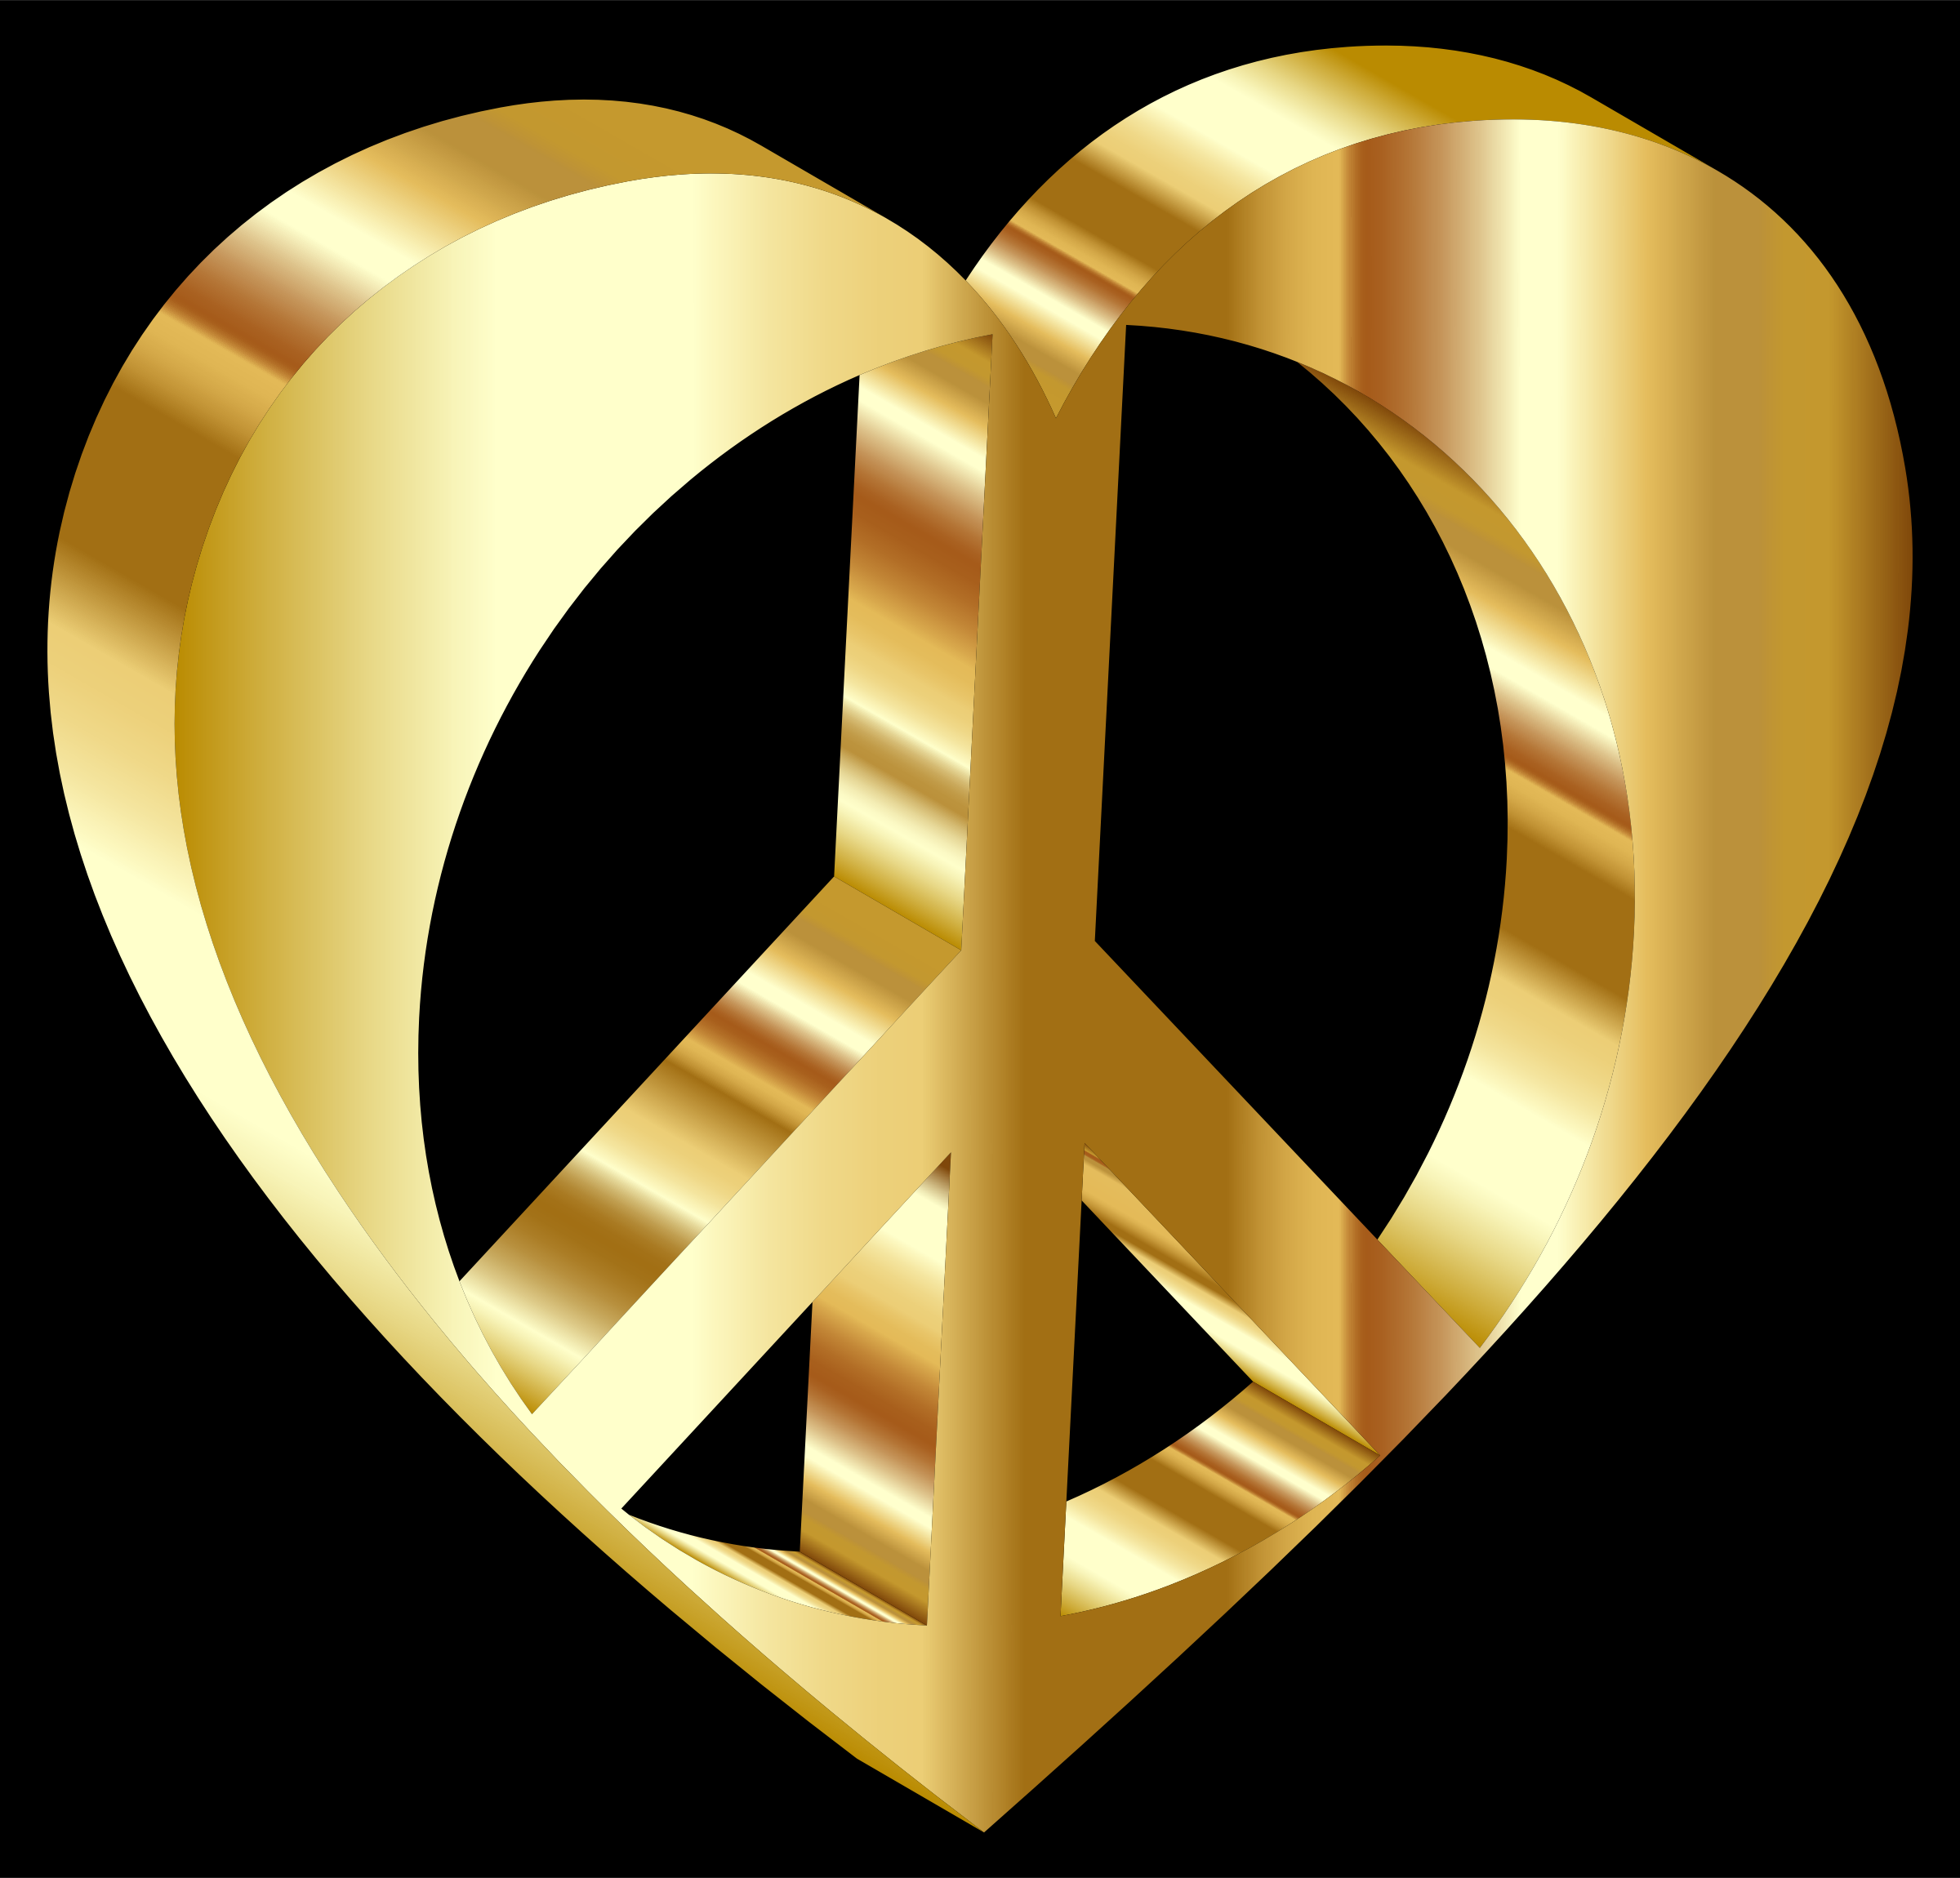 3D Peace Heart Mark II Gold With Background by GDJ